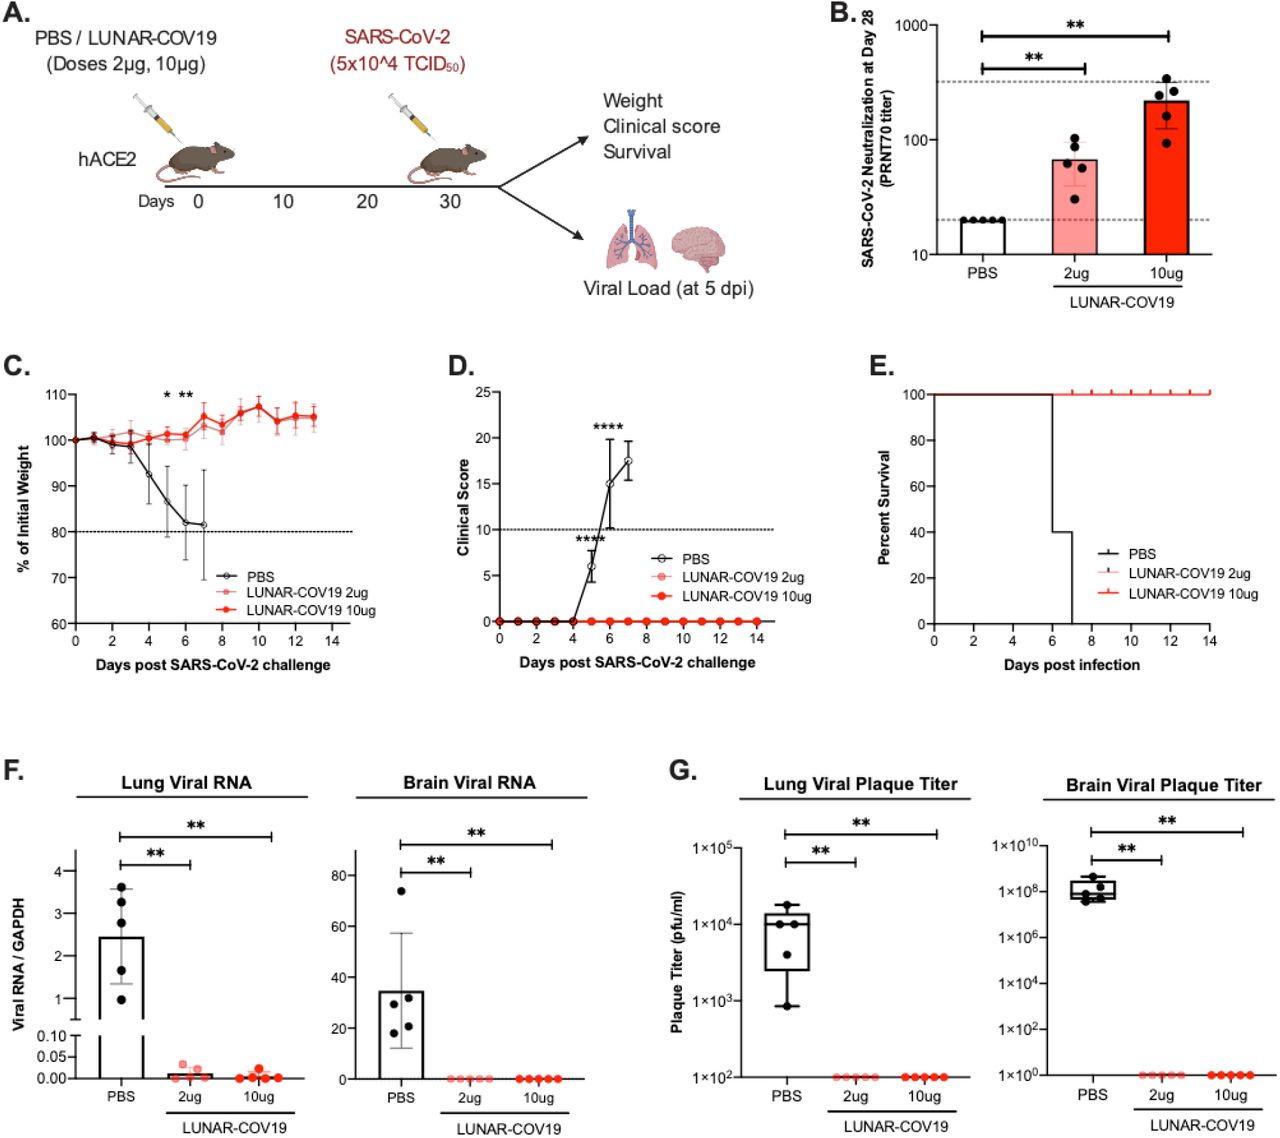 Single dose of LUNAR-COV19 protects hACE2 mice against a lethal challenge of SARS-CoV-2 virus. A ) hACE2 transgenic mice were immunized with a single dose of either PBS or 2 μg or 10 μg of LUNAR-COV19 ( n =5 per group), then challenged with live SARS-CoV-2 at 30 days post-vaccination, and assessed for either survival (with daily weights and clinical scores) or sacrificed at day 5 post-challenge and measured lung and brain tissue viral loads. Study design schematic diagram was created with BioRender.com B ) Live SARS-CoV-2 neutralizing antibody titers (PRNT70) measured at 28 days post-vaccination. C ) Weight, D ) clinical score and E ) survival was estimated following challenge with a lethal dose (5×10^5 TCID 50 ) of live SARS-CoV-2 virus. F ) Viral RNA and G ) infectious virus in the lungs and brain of challenged mice were measured with qRT-PCR or plaque assay, respectively. PRNT 70 and viral titers (RNA and plaque titers) were compared across groups using the non-parametric Mann-Whitney U test. Weights and clinical scores at different timepoints were compared between PBS and 10ug LUNAR-CoV19 immunized mice using multiple t -tests. P -values are denoted by * for 0.05